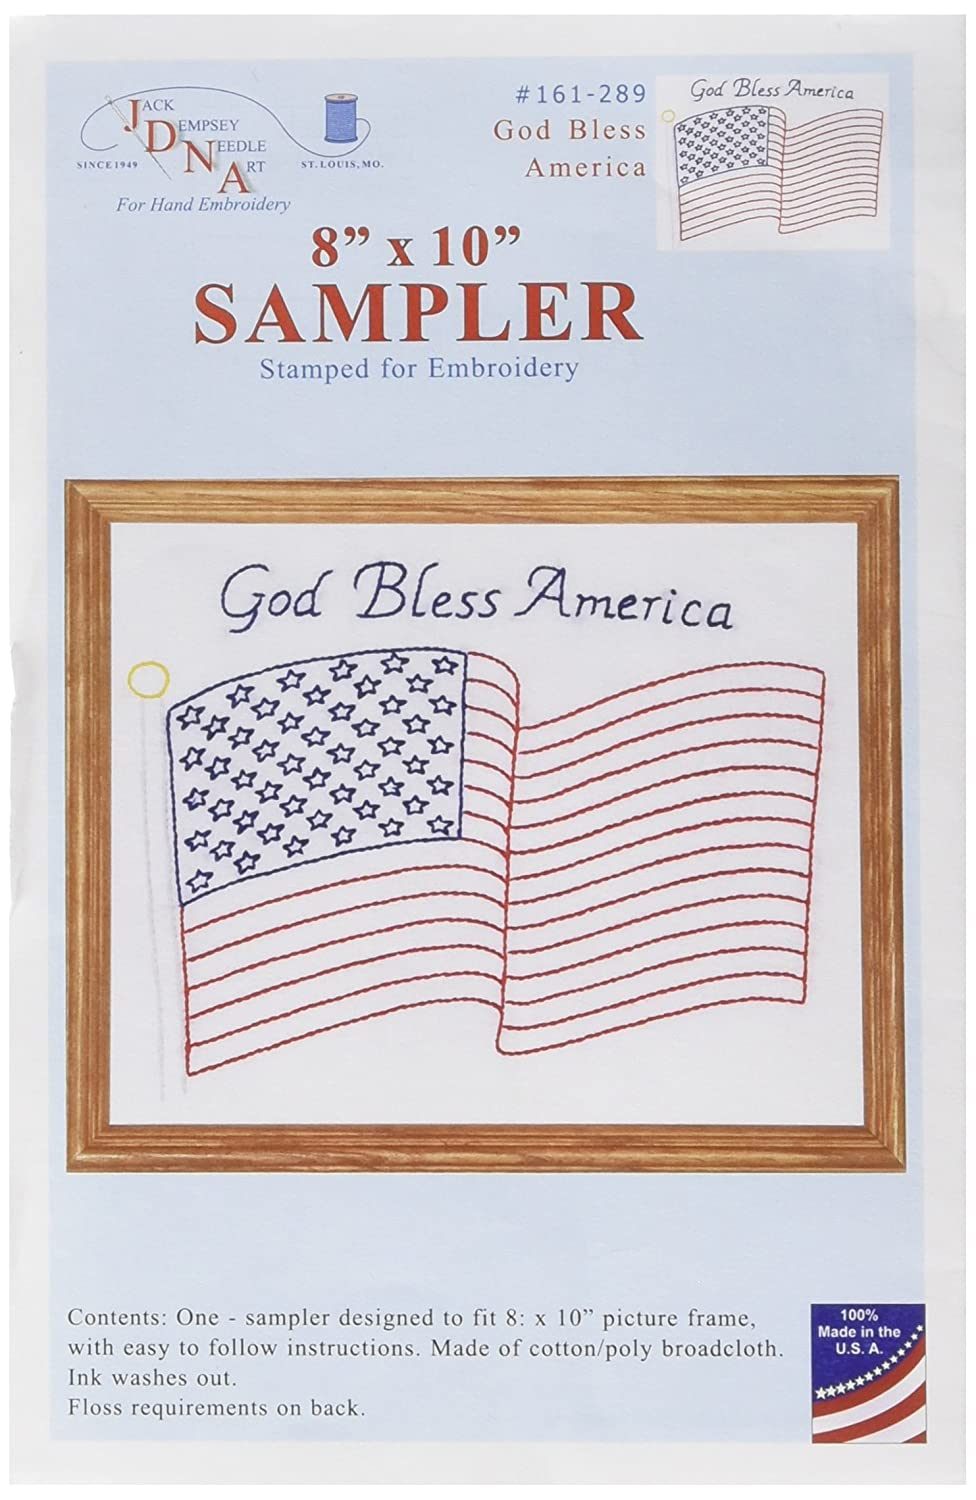 Stamped White Sampler 8'X10'-God Bless America Jack Dempsey 161289